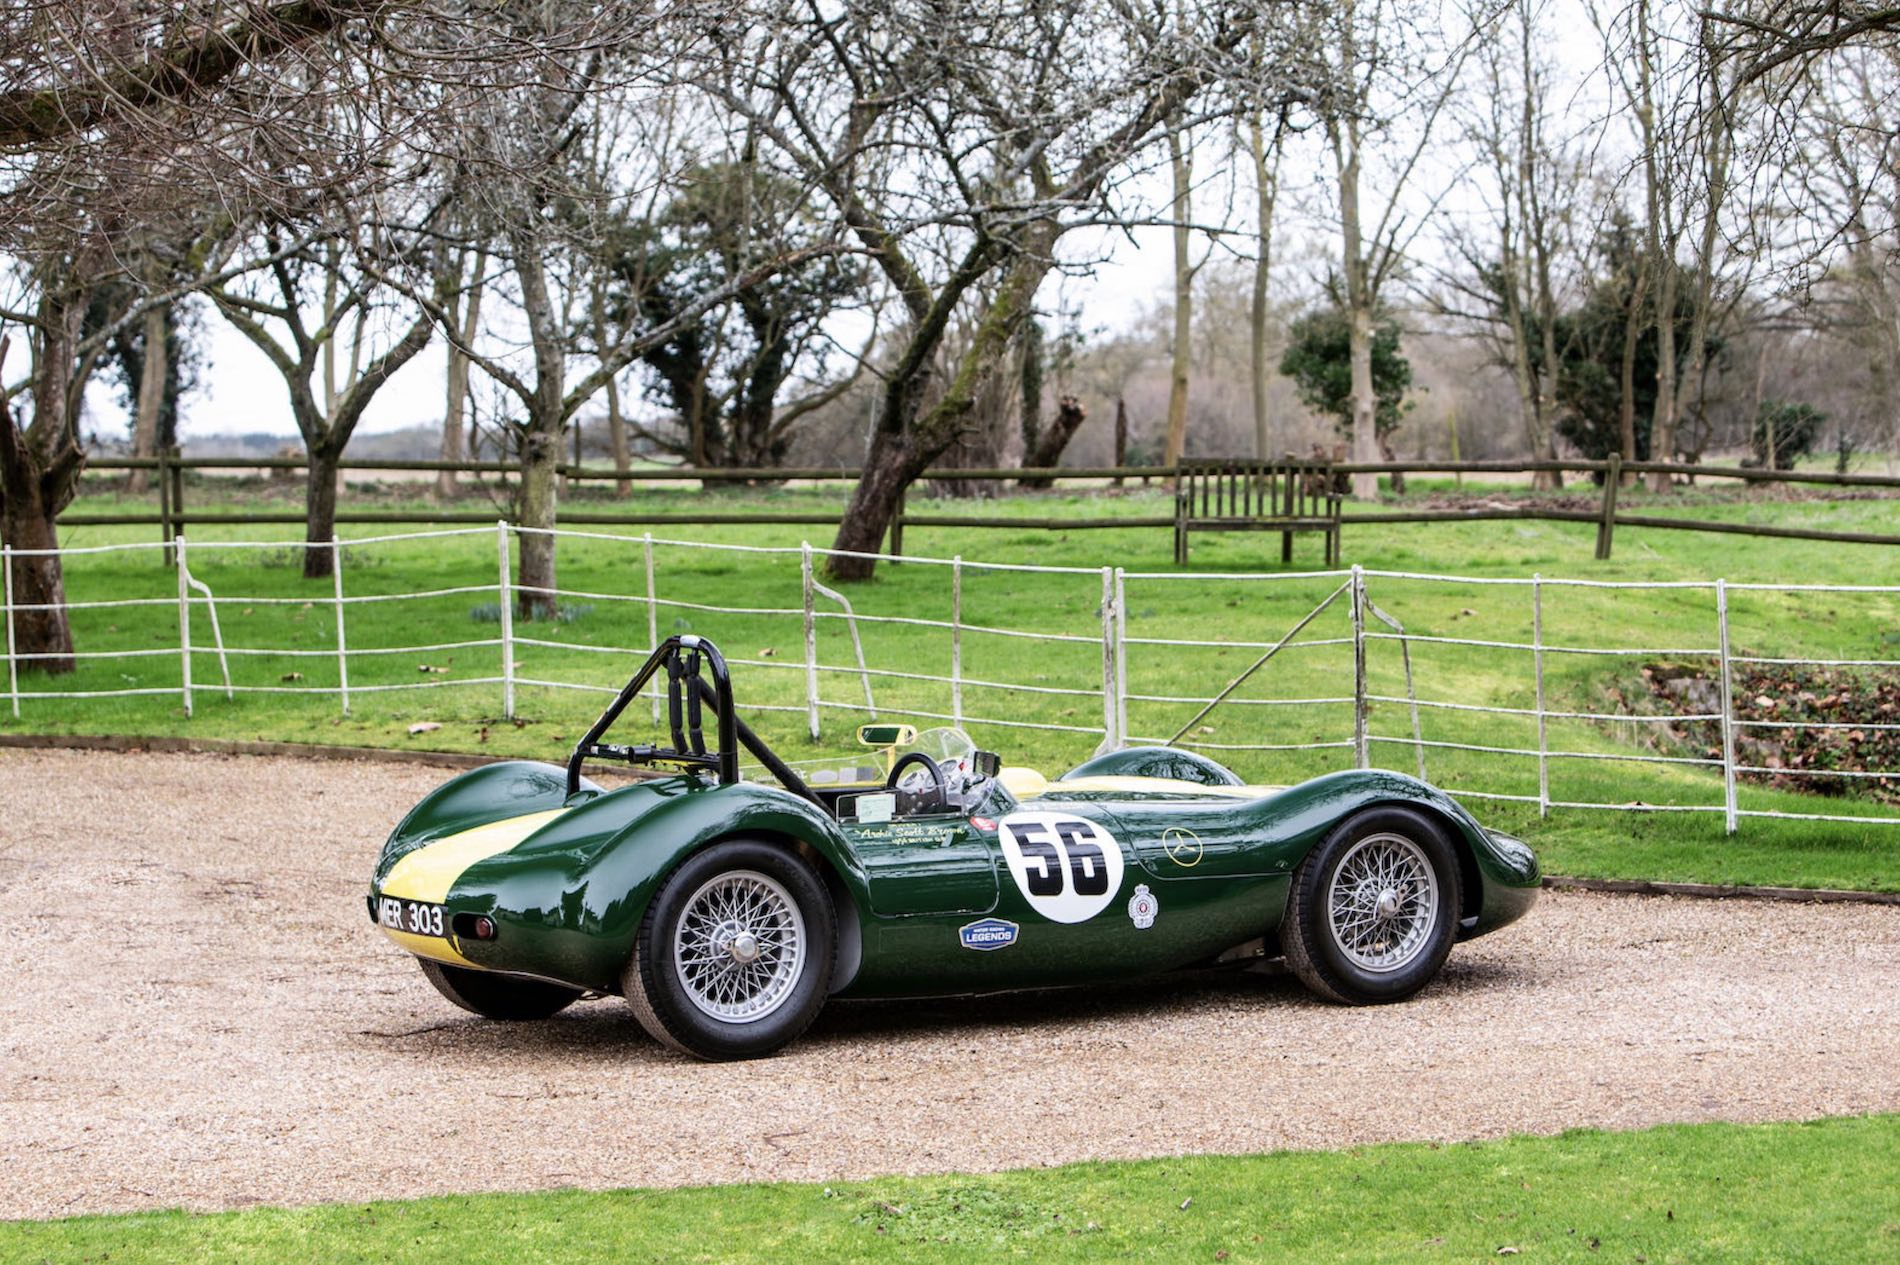 Unique 1956 Lister-Maserati racer leads Bonhams private sale